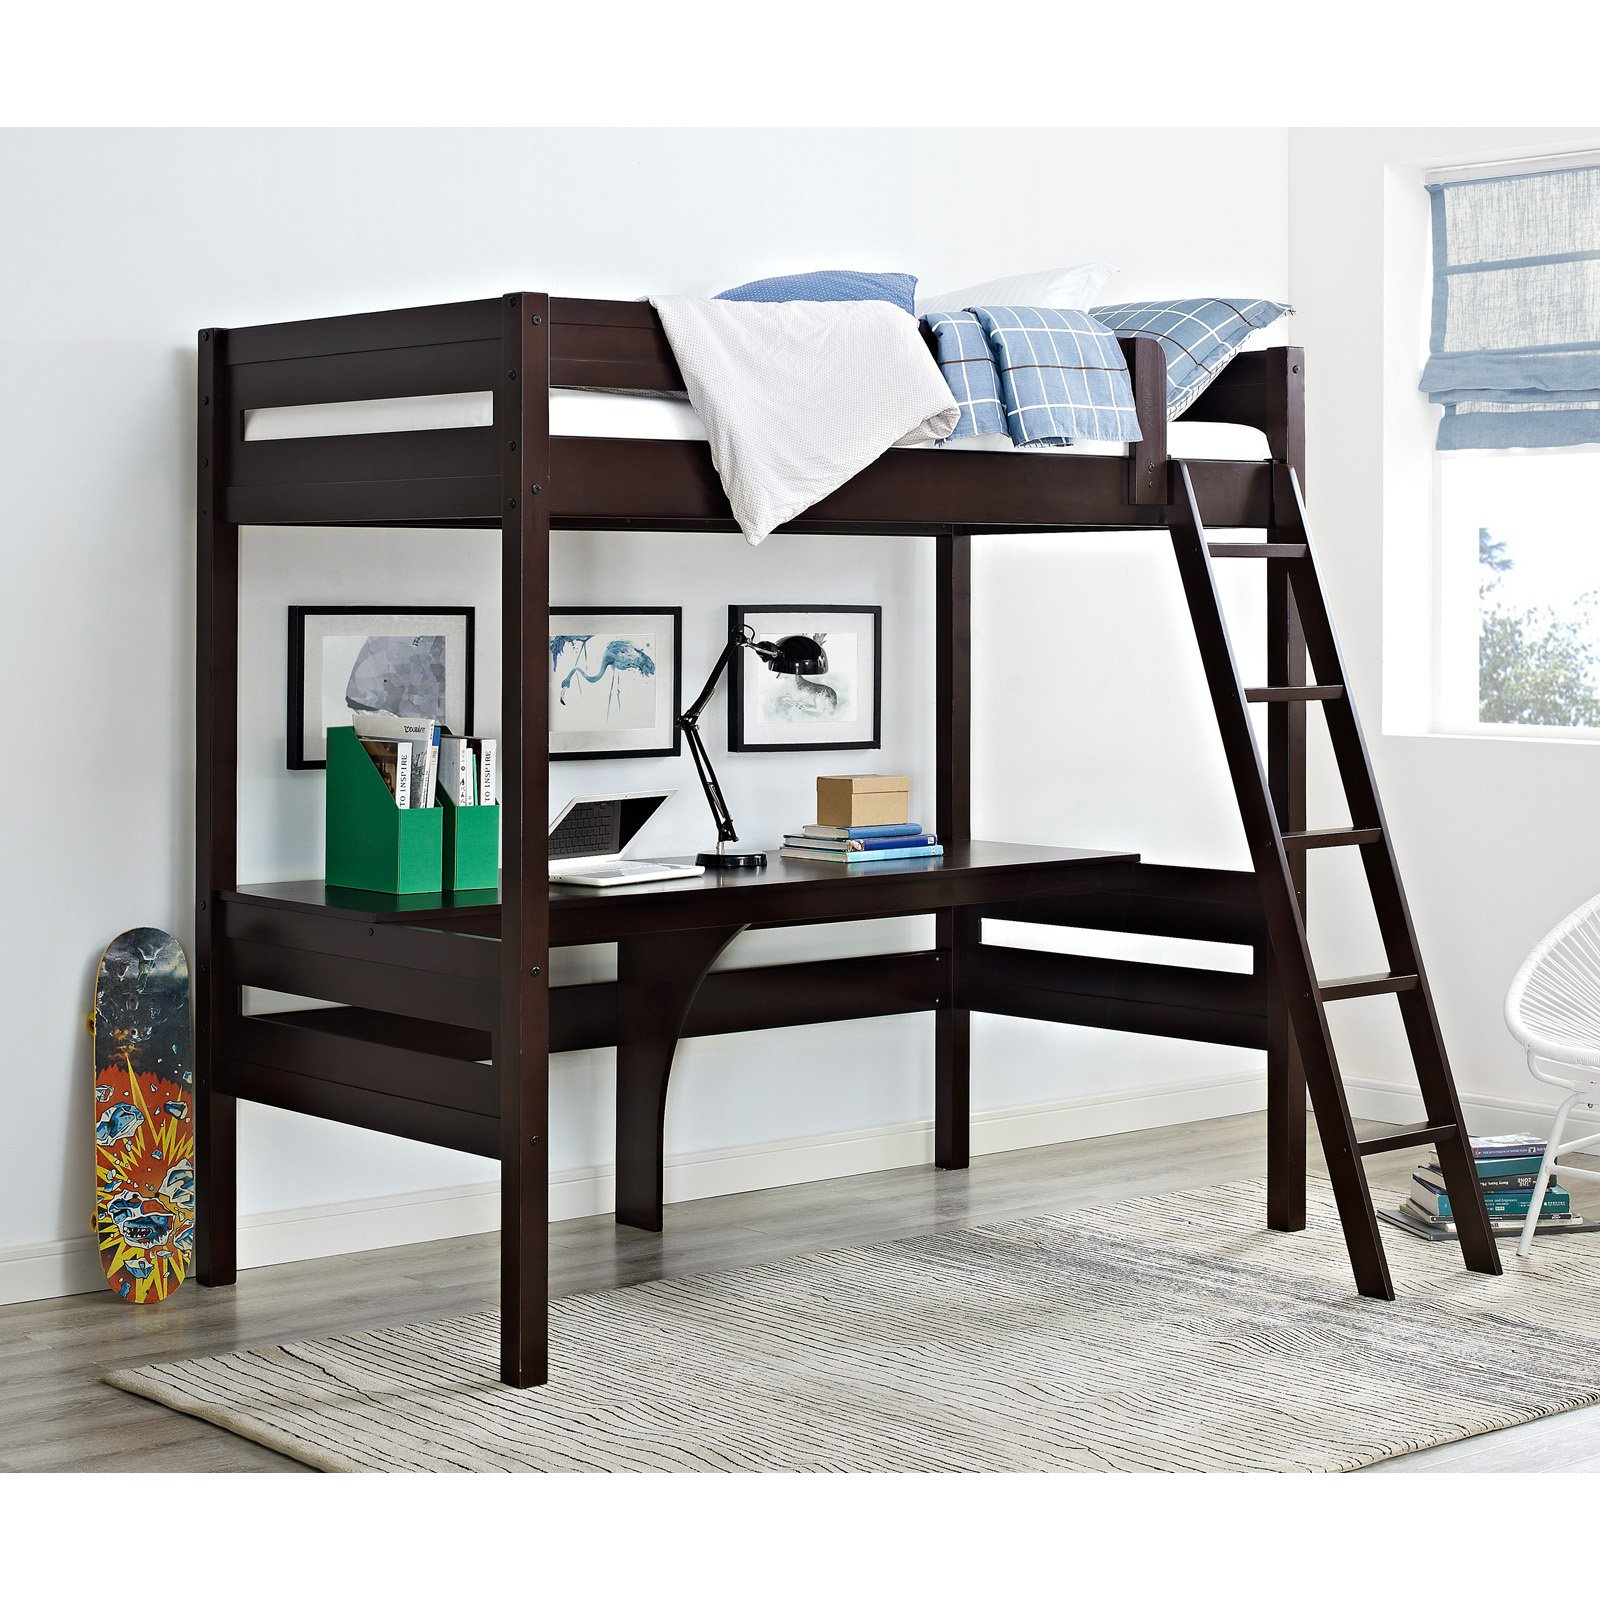 Bed With Desk Dorel Living Harlan Twin Wood Loft Bed With Desk Multiple Colors